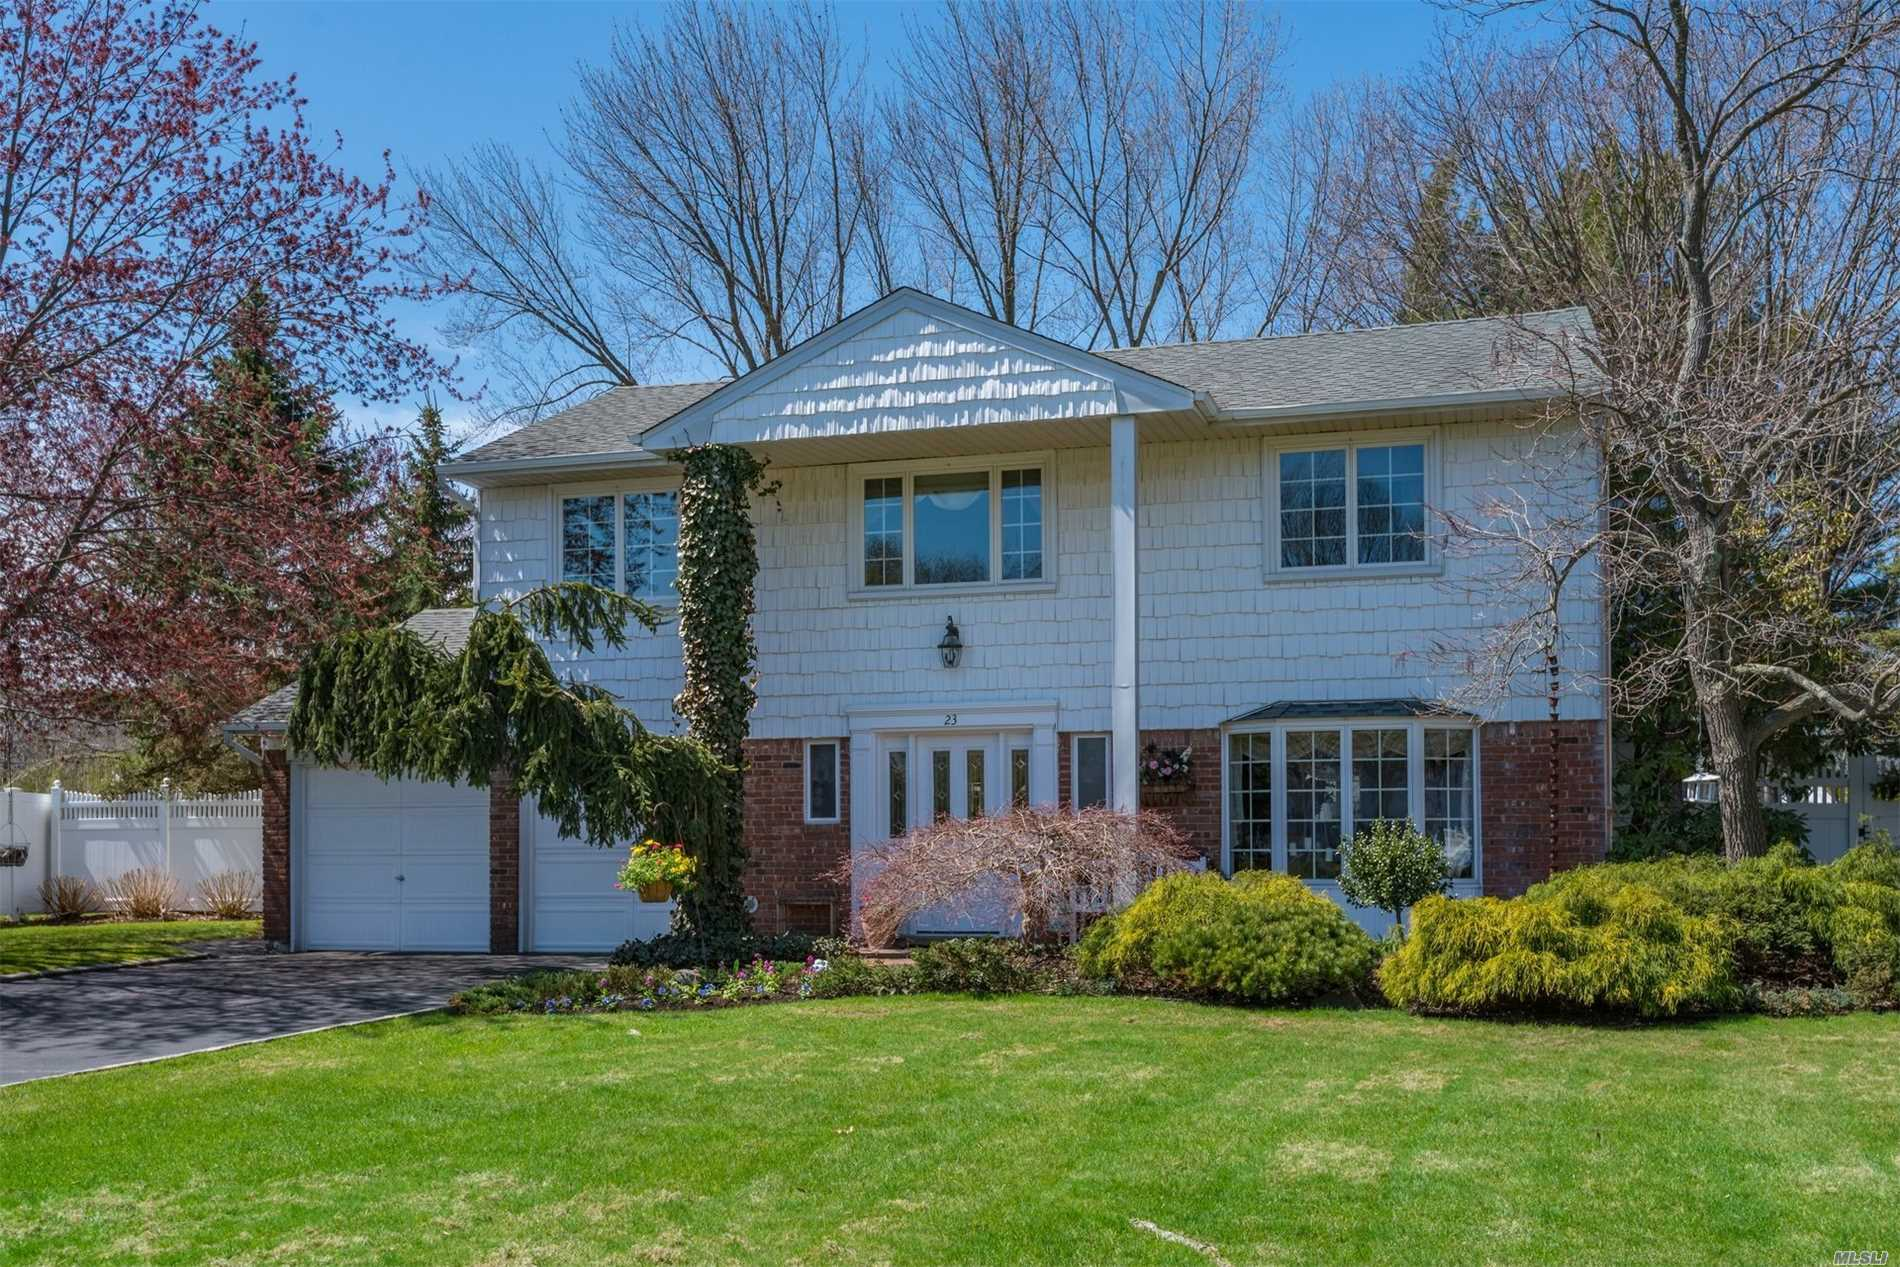 Photo of home for sale at 23 Medford Ln, East Northport NY